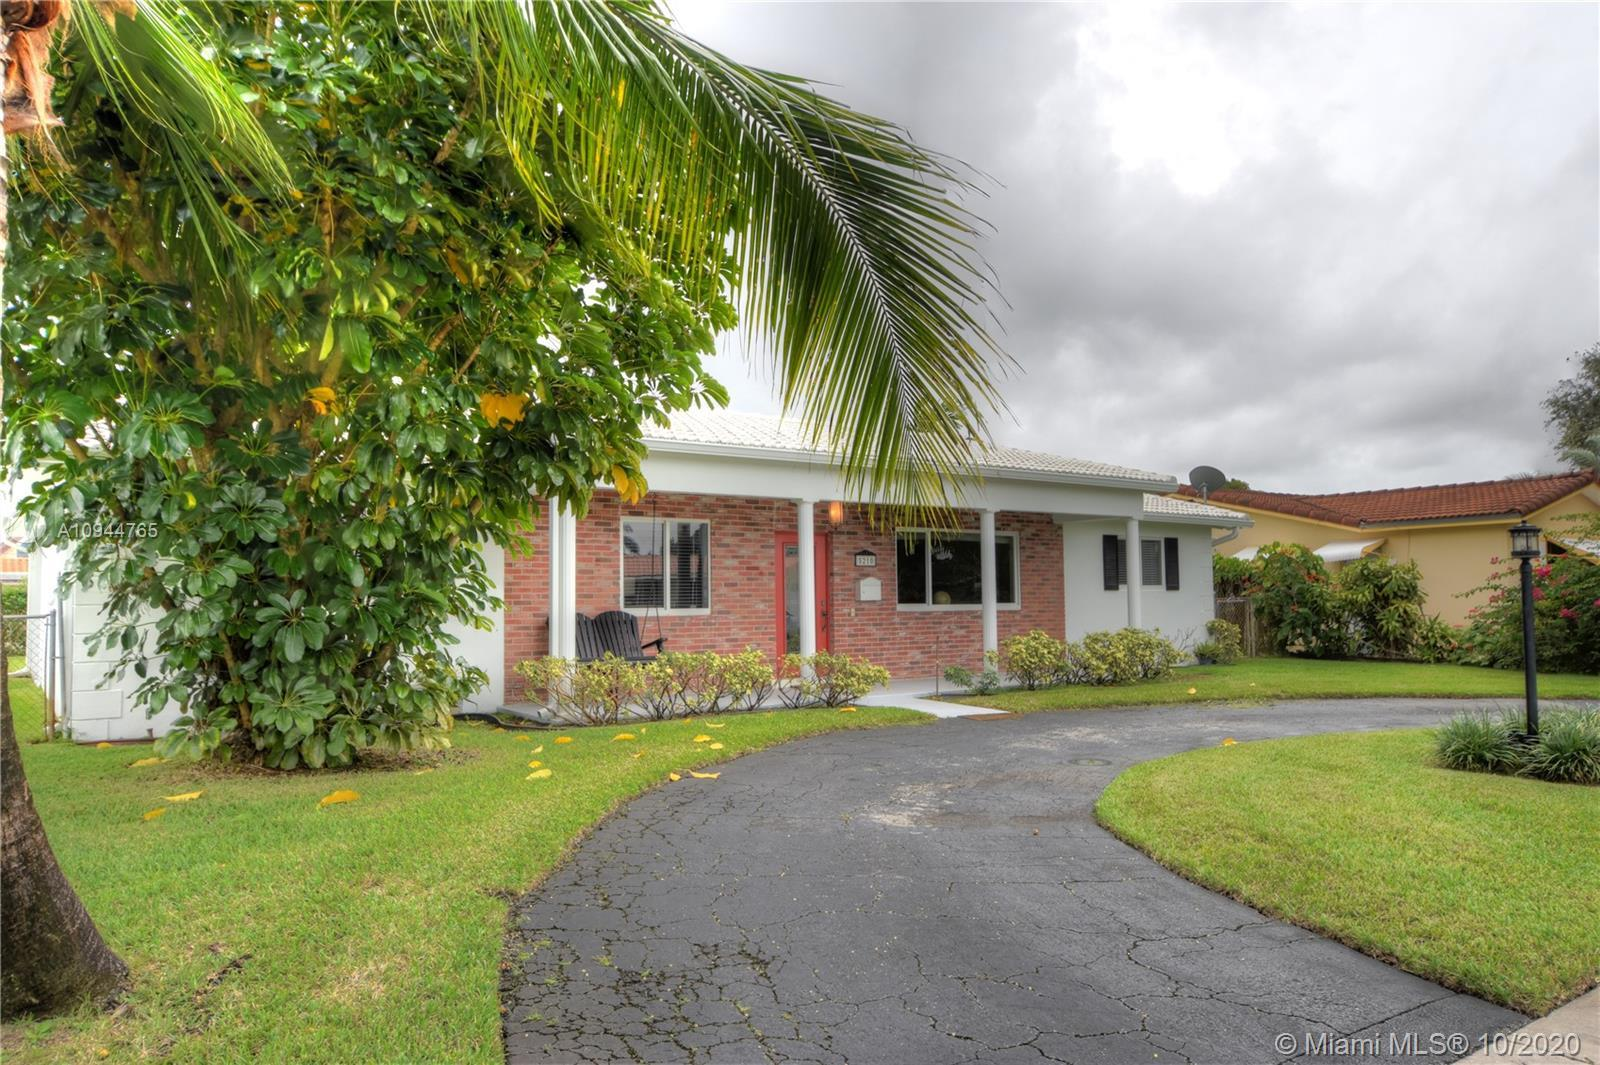 Meticulously well cared for home, open floor plan with wood flooring throughout.  Impact windows, do